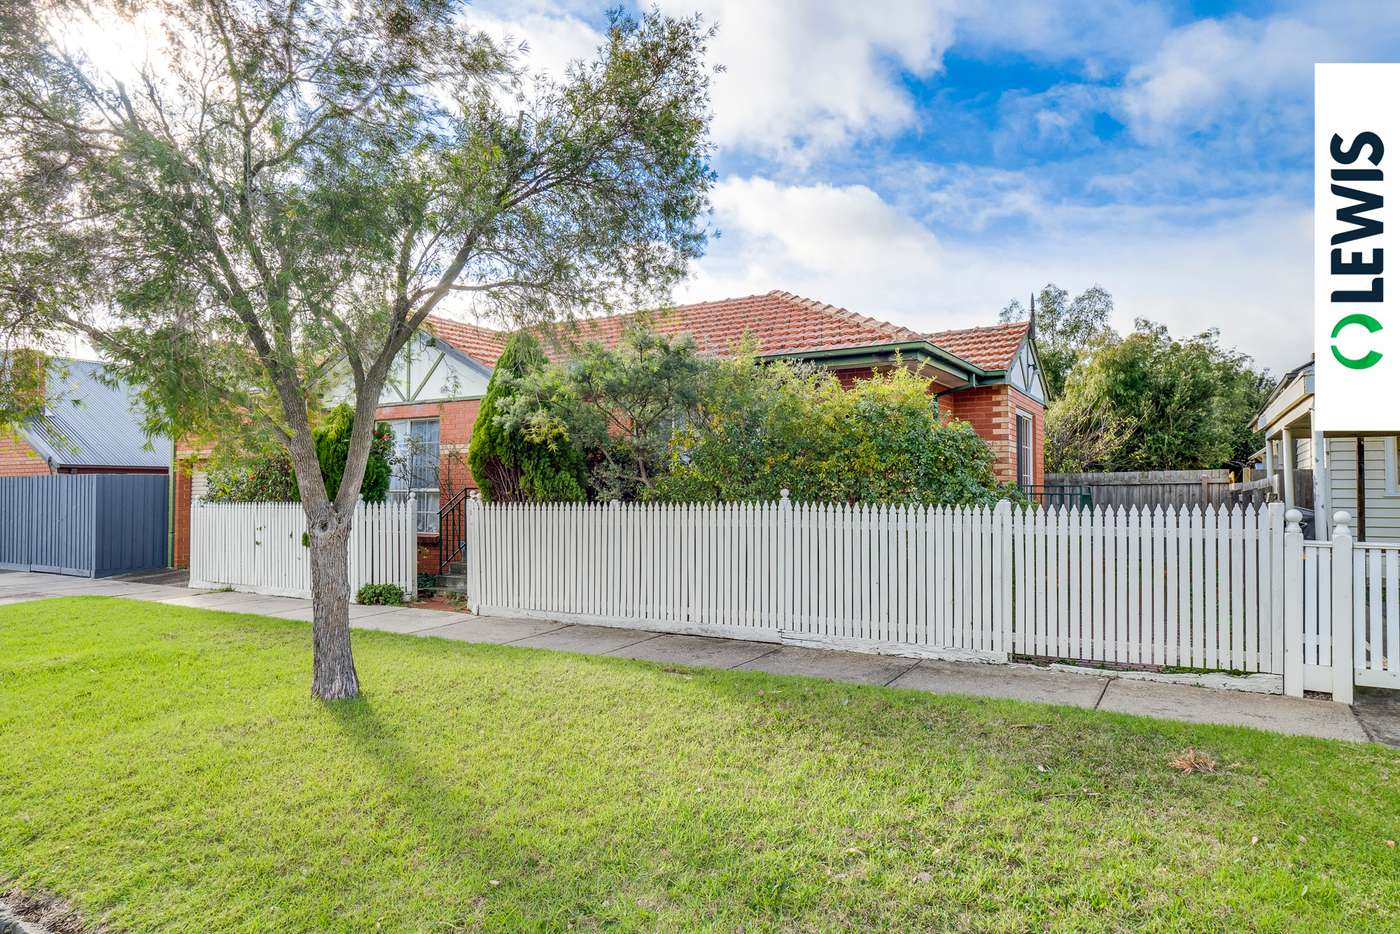 Main view of Homely house listing, 24 Fowler Street, Coburg VIC 3058